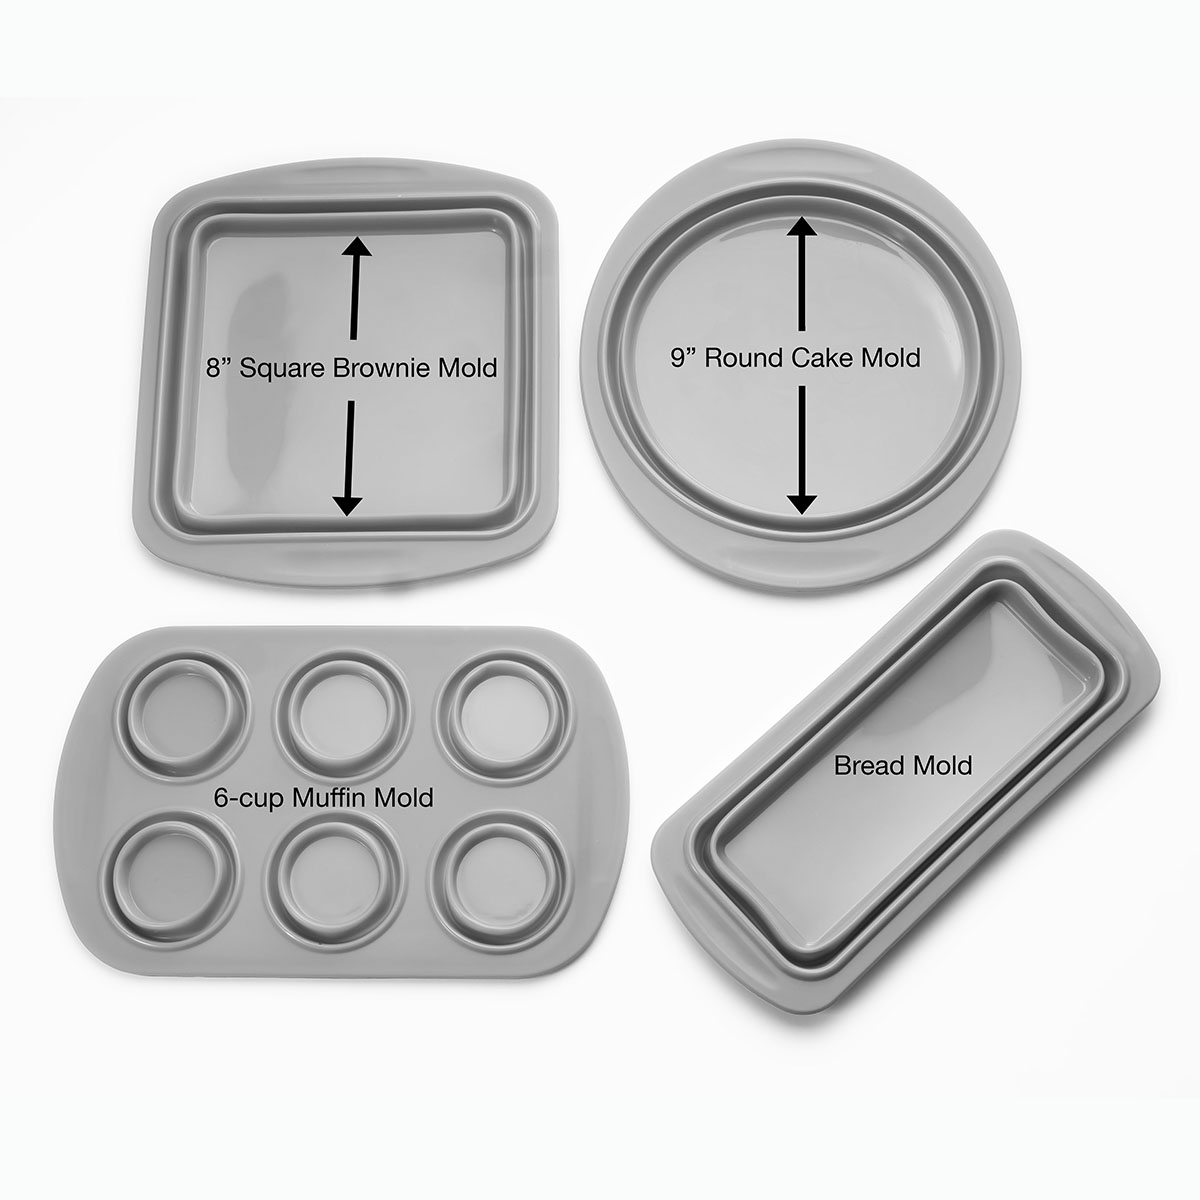 Cook-039-s-Companion-4-Piece-Collapsible-Silicone-Bakeware-Set thumbnail 3